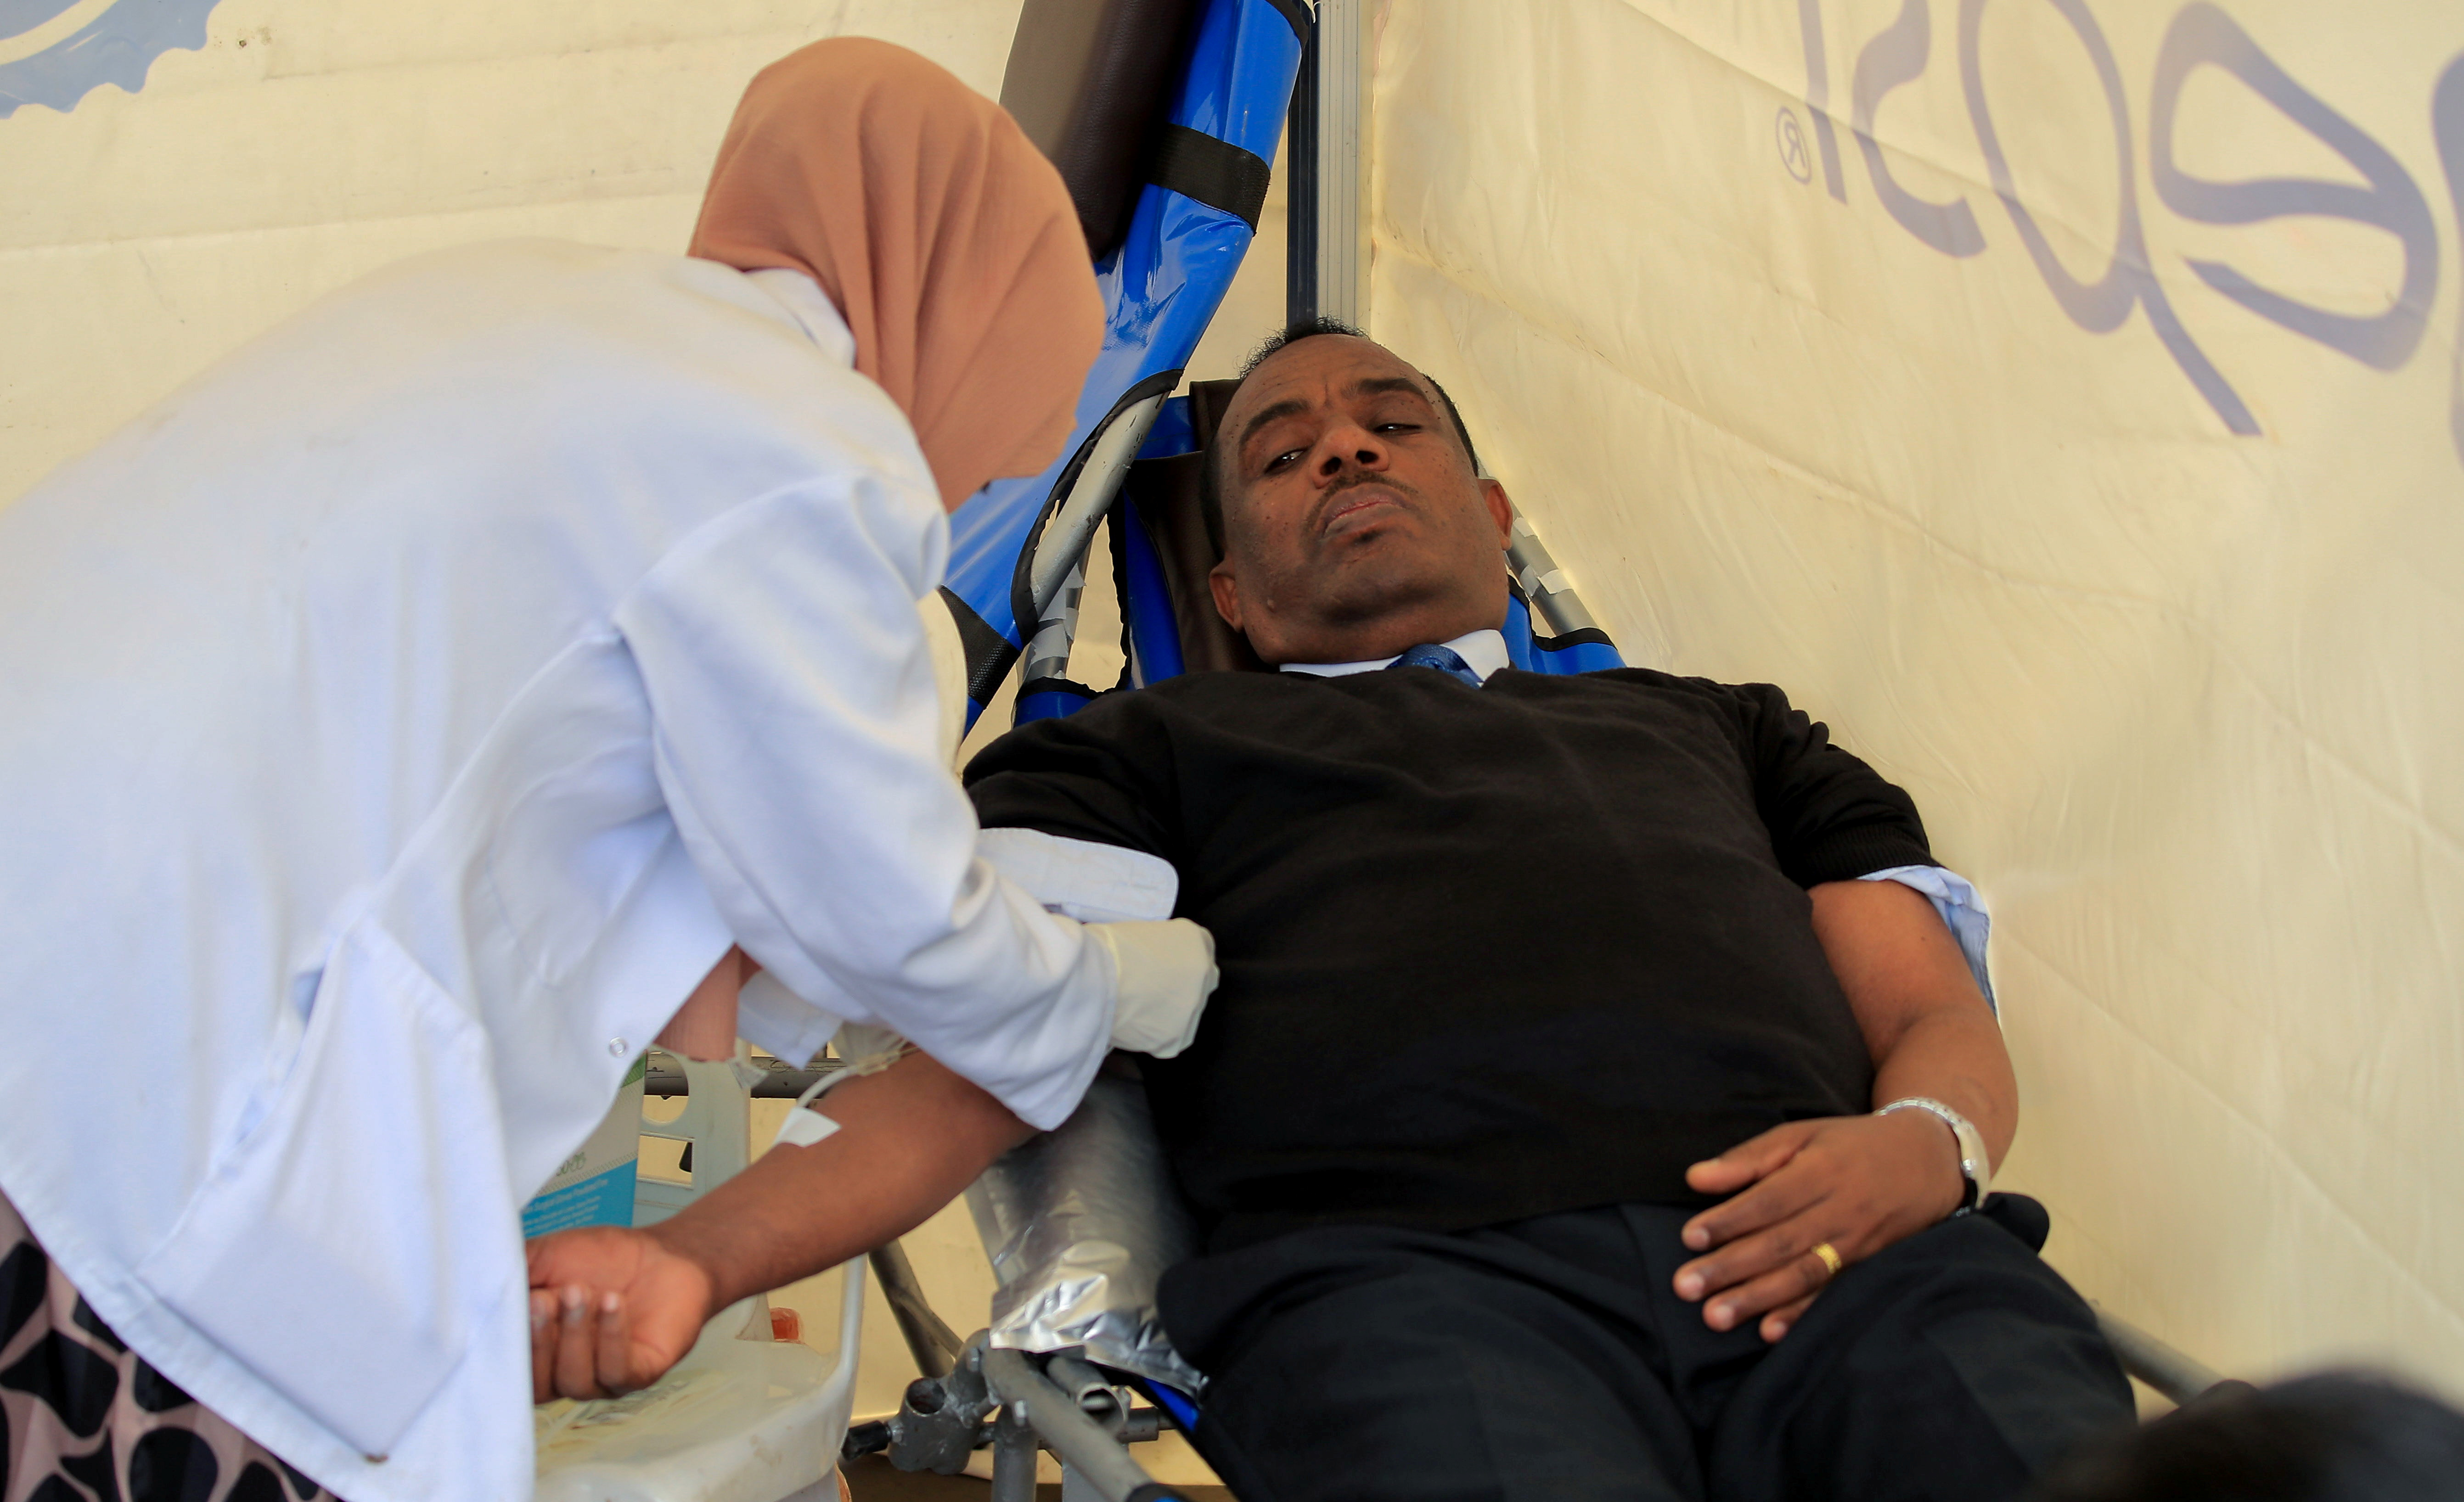 Kenea Yadeta, Defense Minister of Ethiopia, donates blood during the farewell ceremony for the Recruits to join Ethiopia's Defense Force at the Meskel Square in Addis Ababa, Ethiopia July 27, 2021. REUTERS/Tiksa Negeri